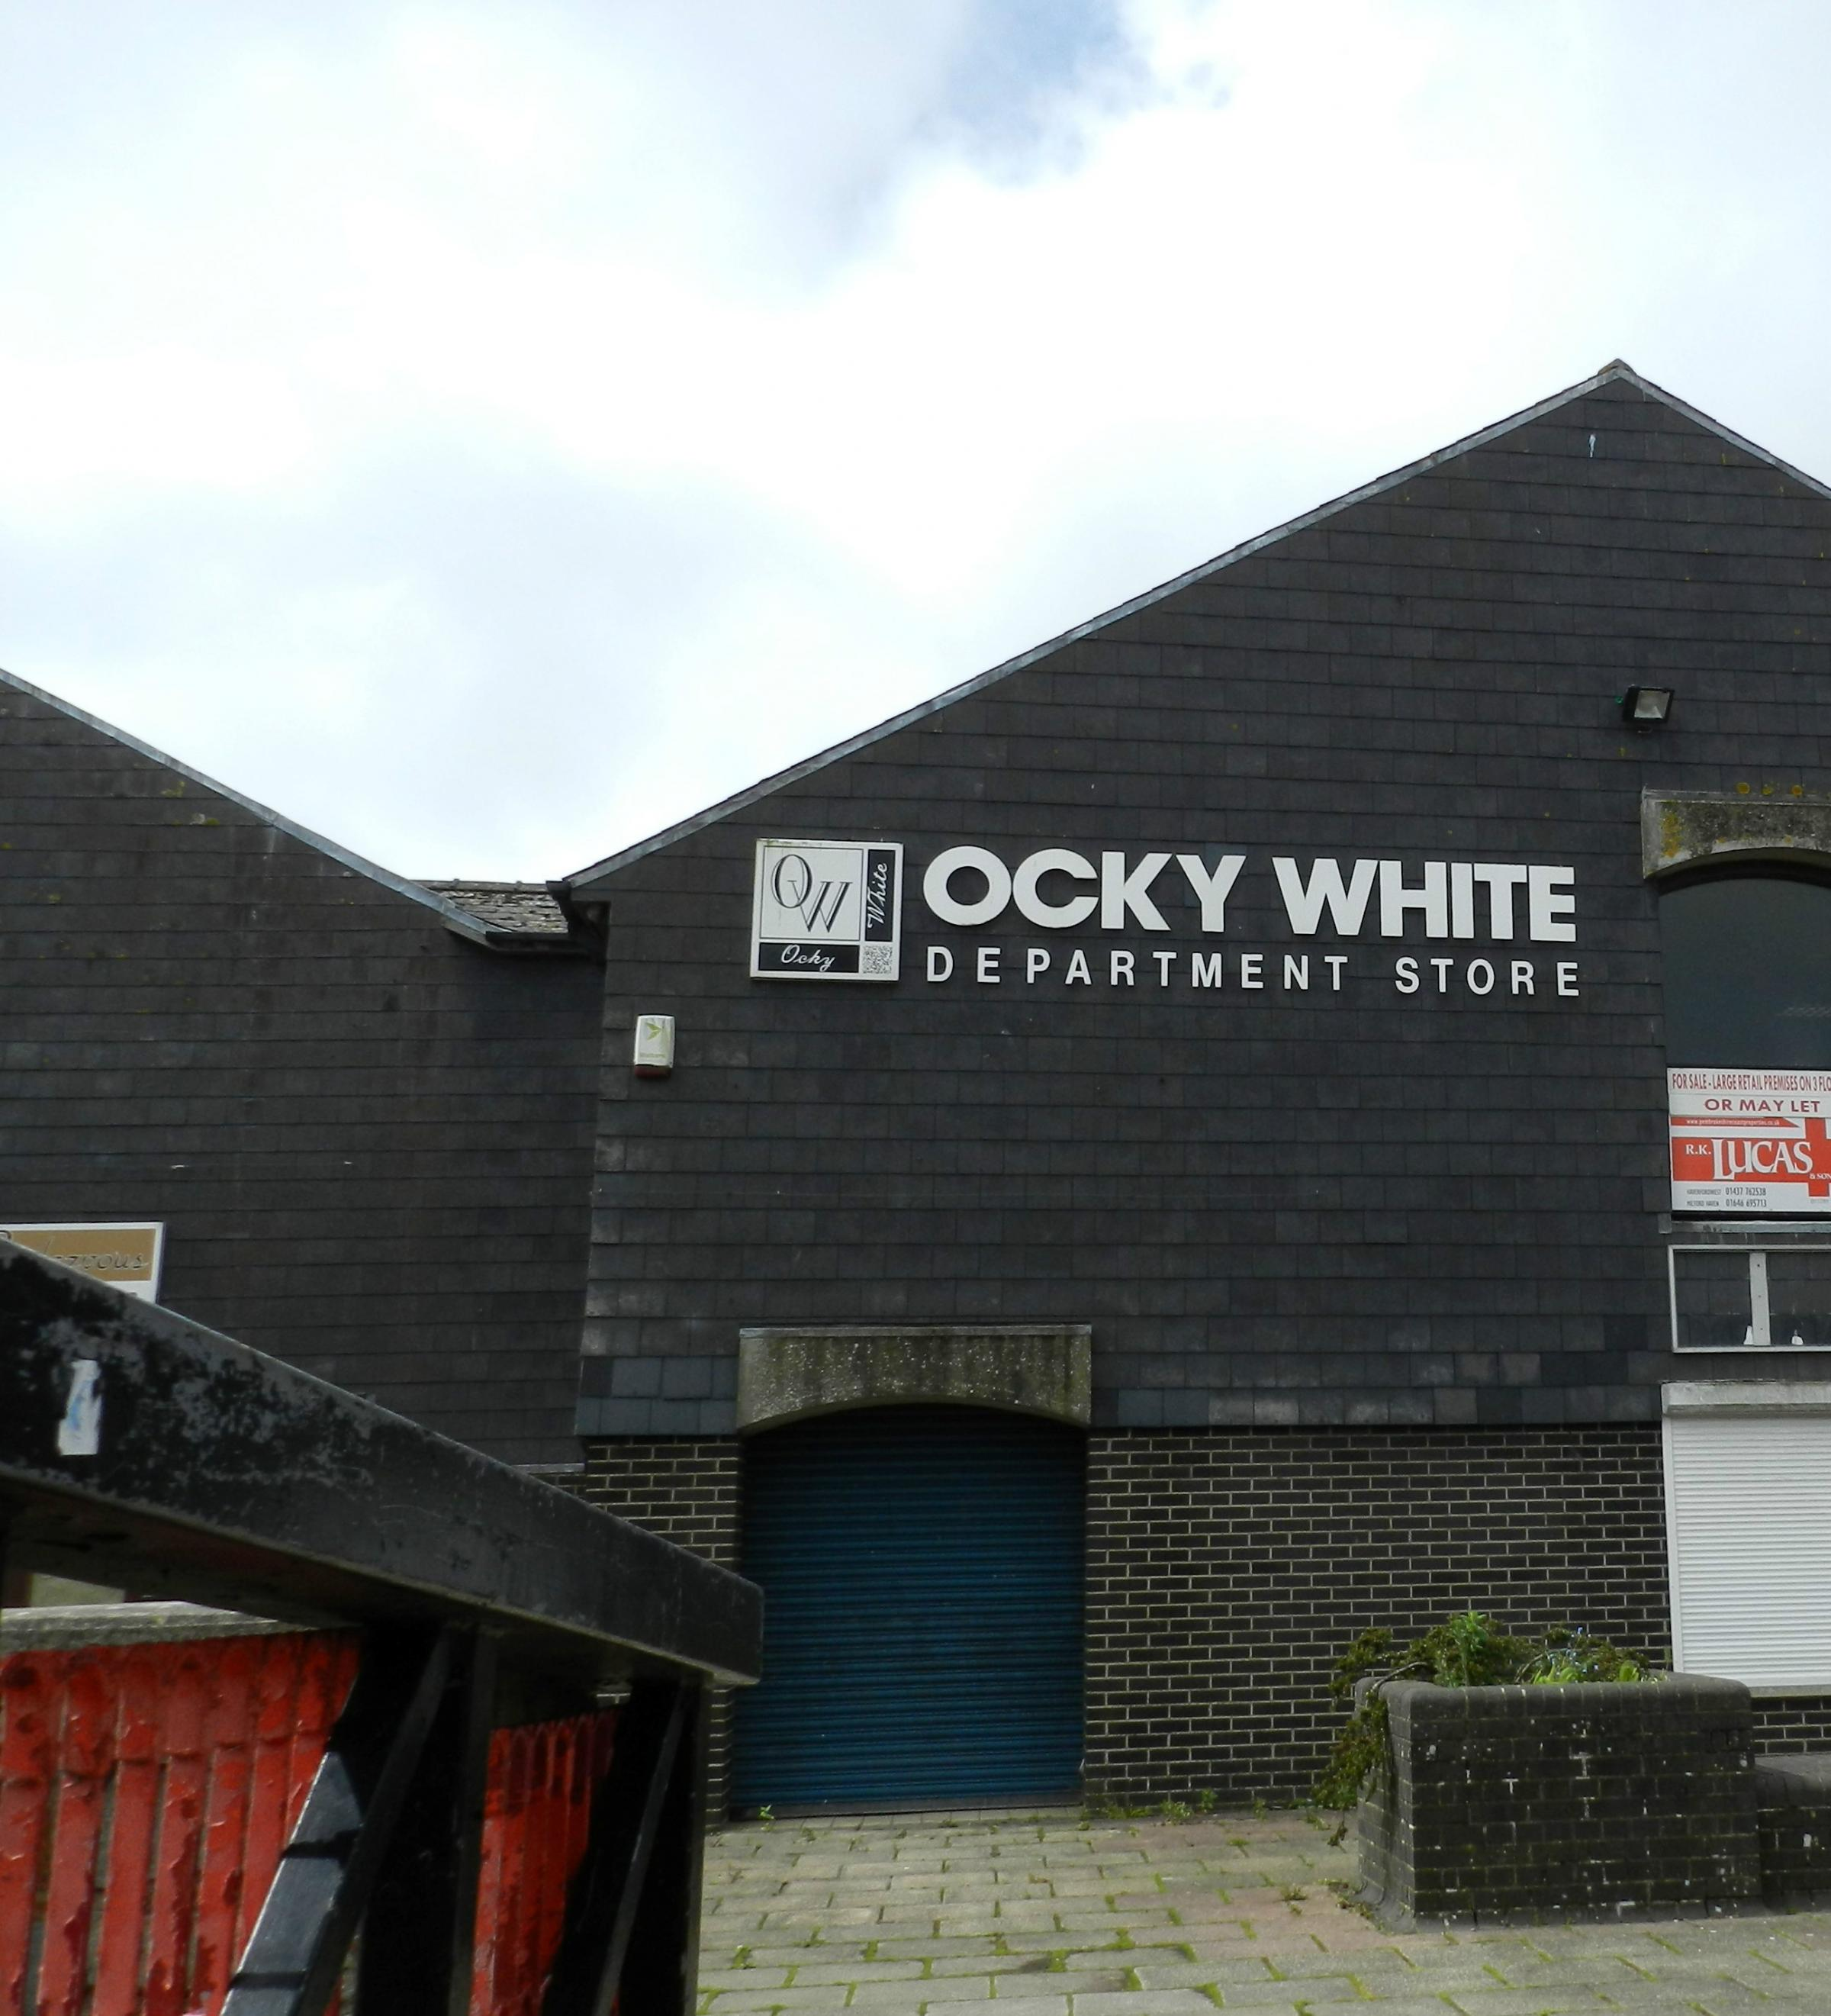 Cabinet move to buy Ocky White building called-in